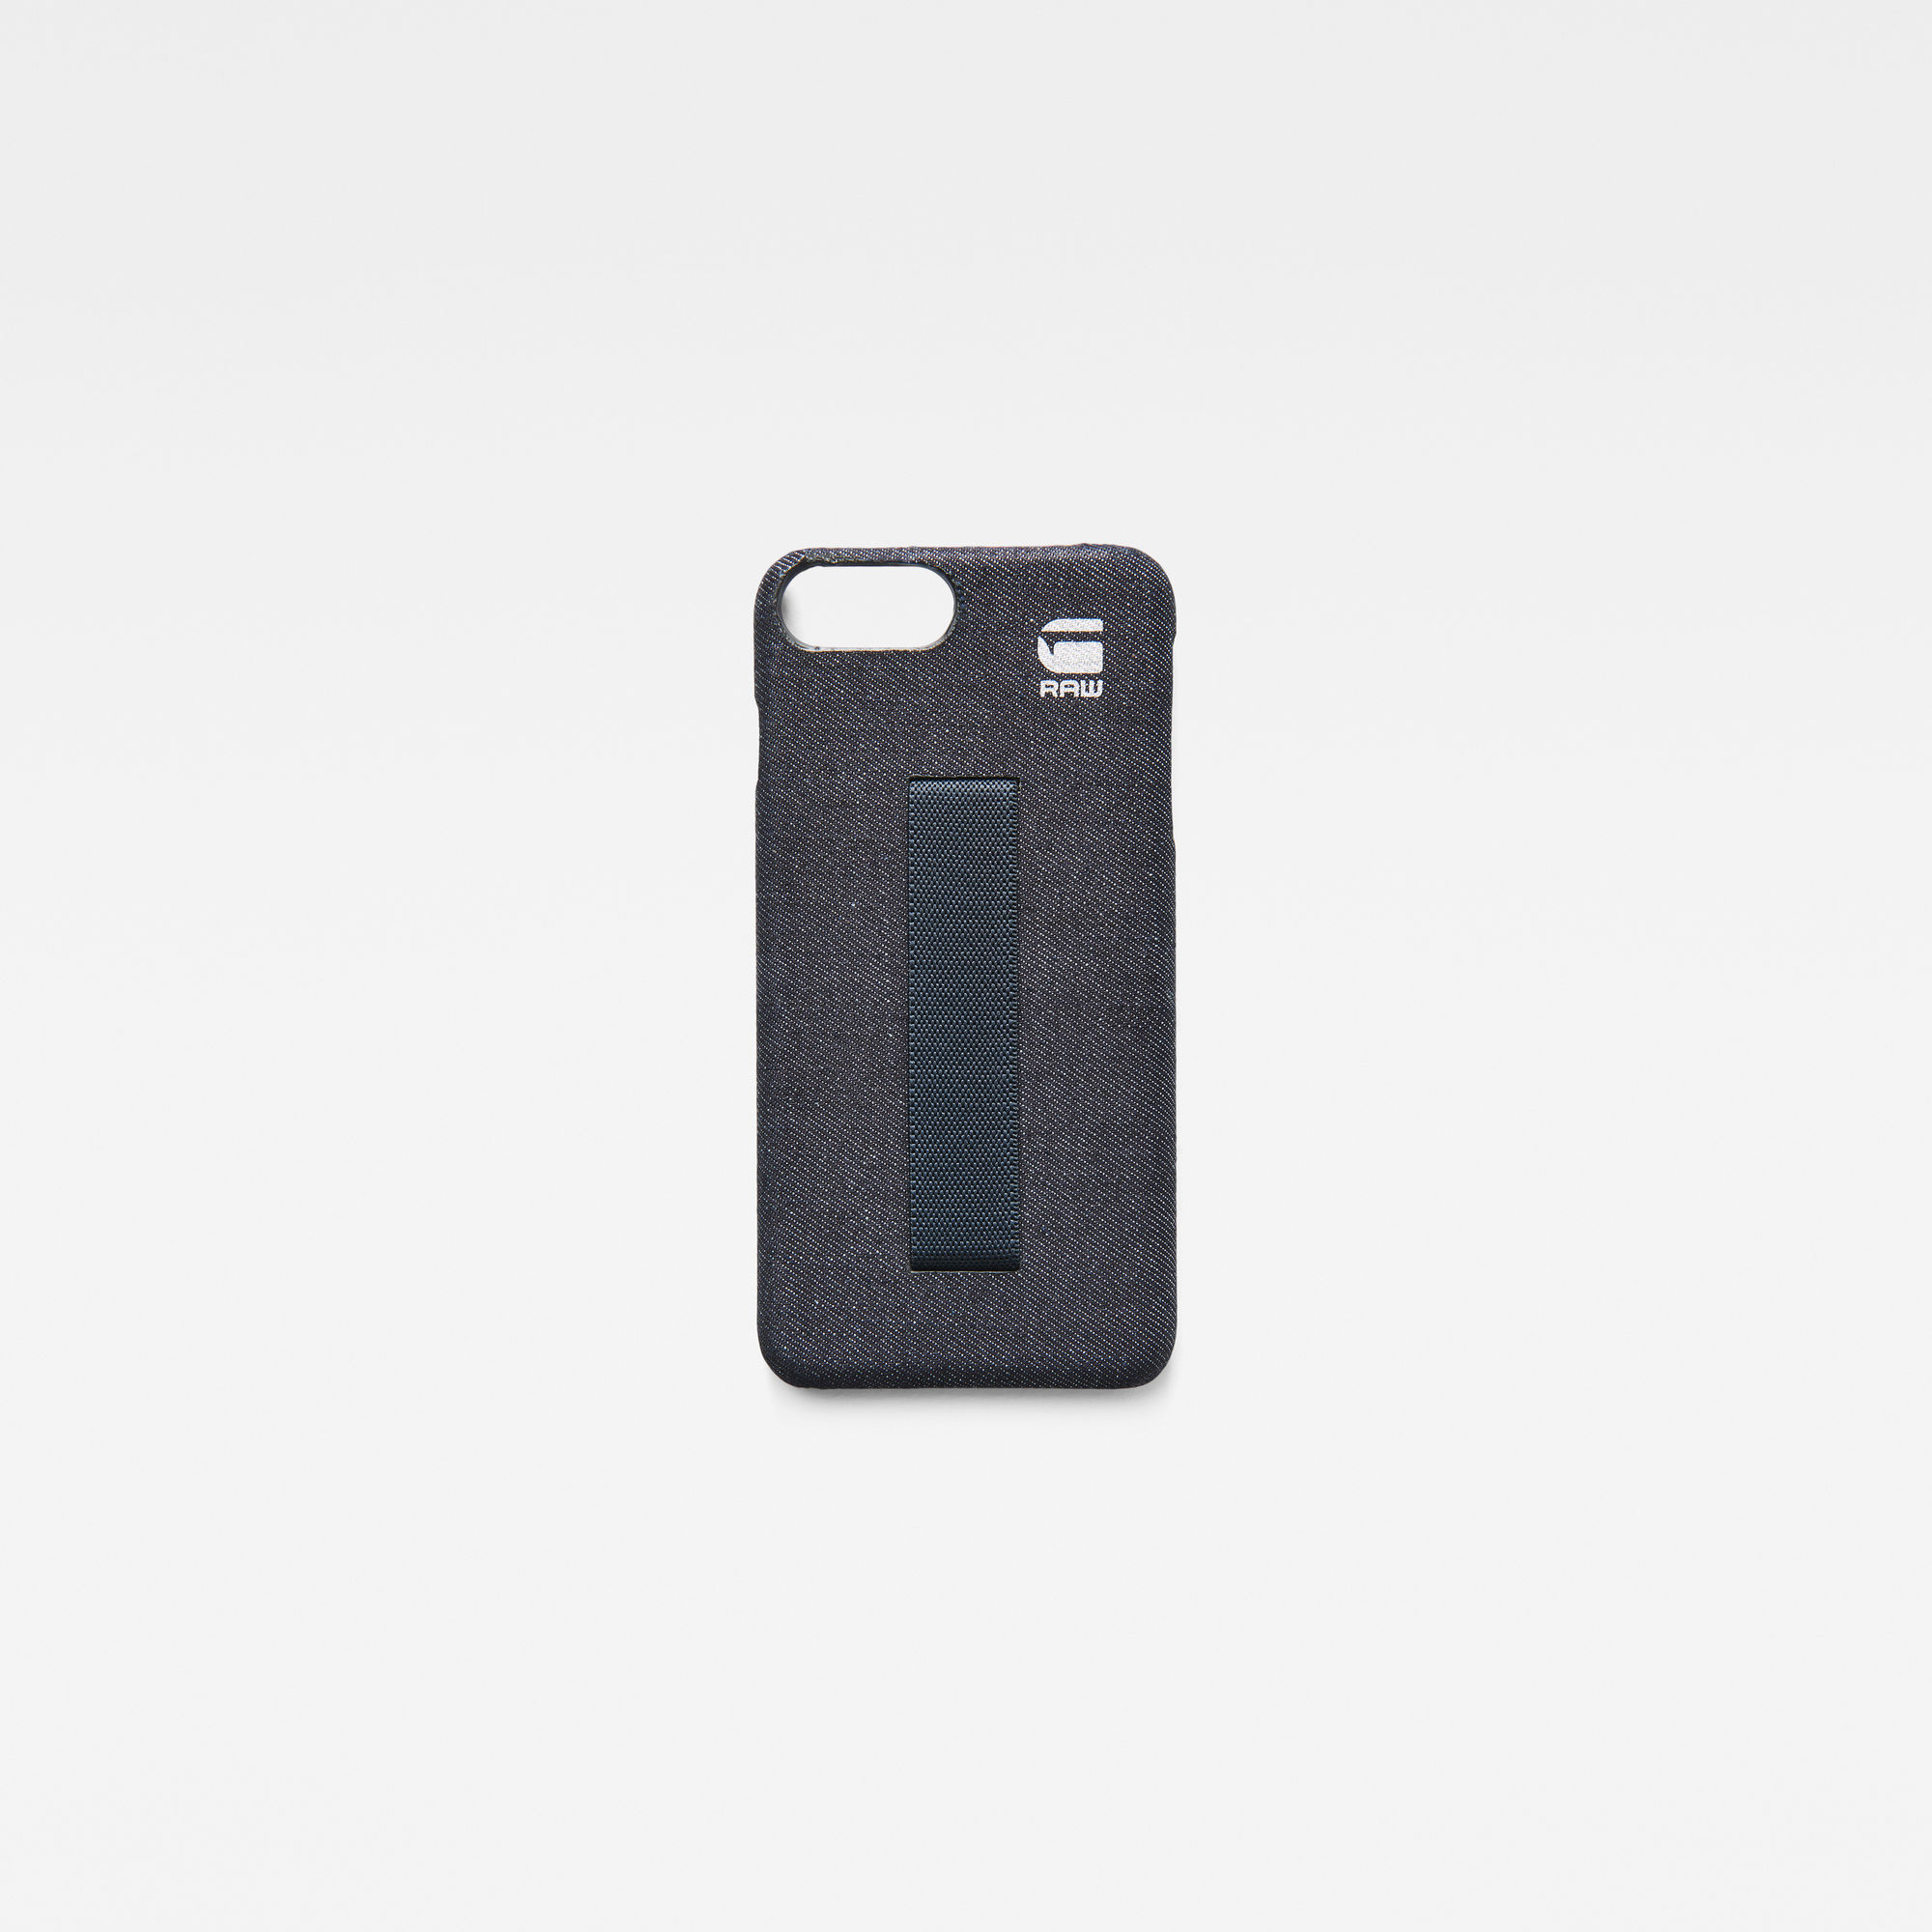 Image of G Star Raw G-Star RAW Denim Case for iPhone 6/7 Plus